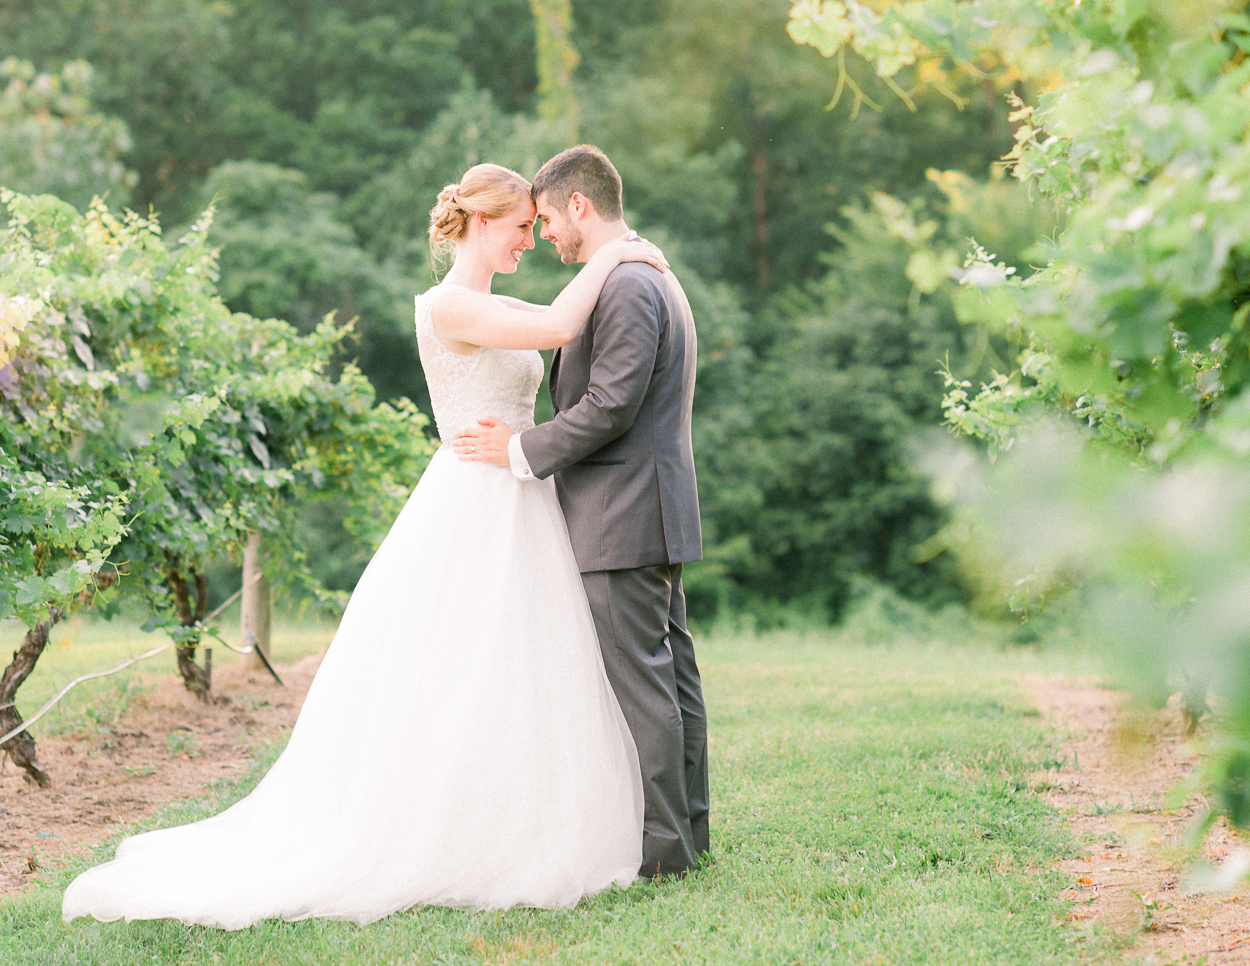 virginiawedding_vineyardwedding_LostCreekWinery_LeesburgWedding_youseephotography_Siegel (125).JPG